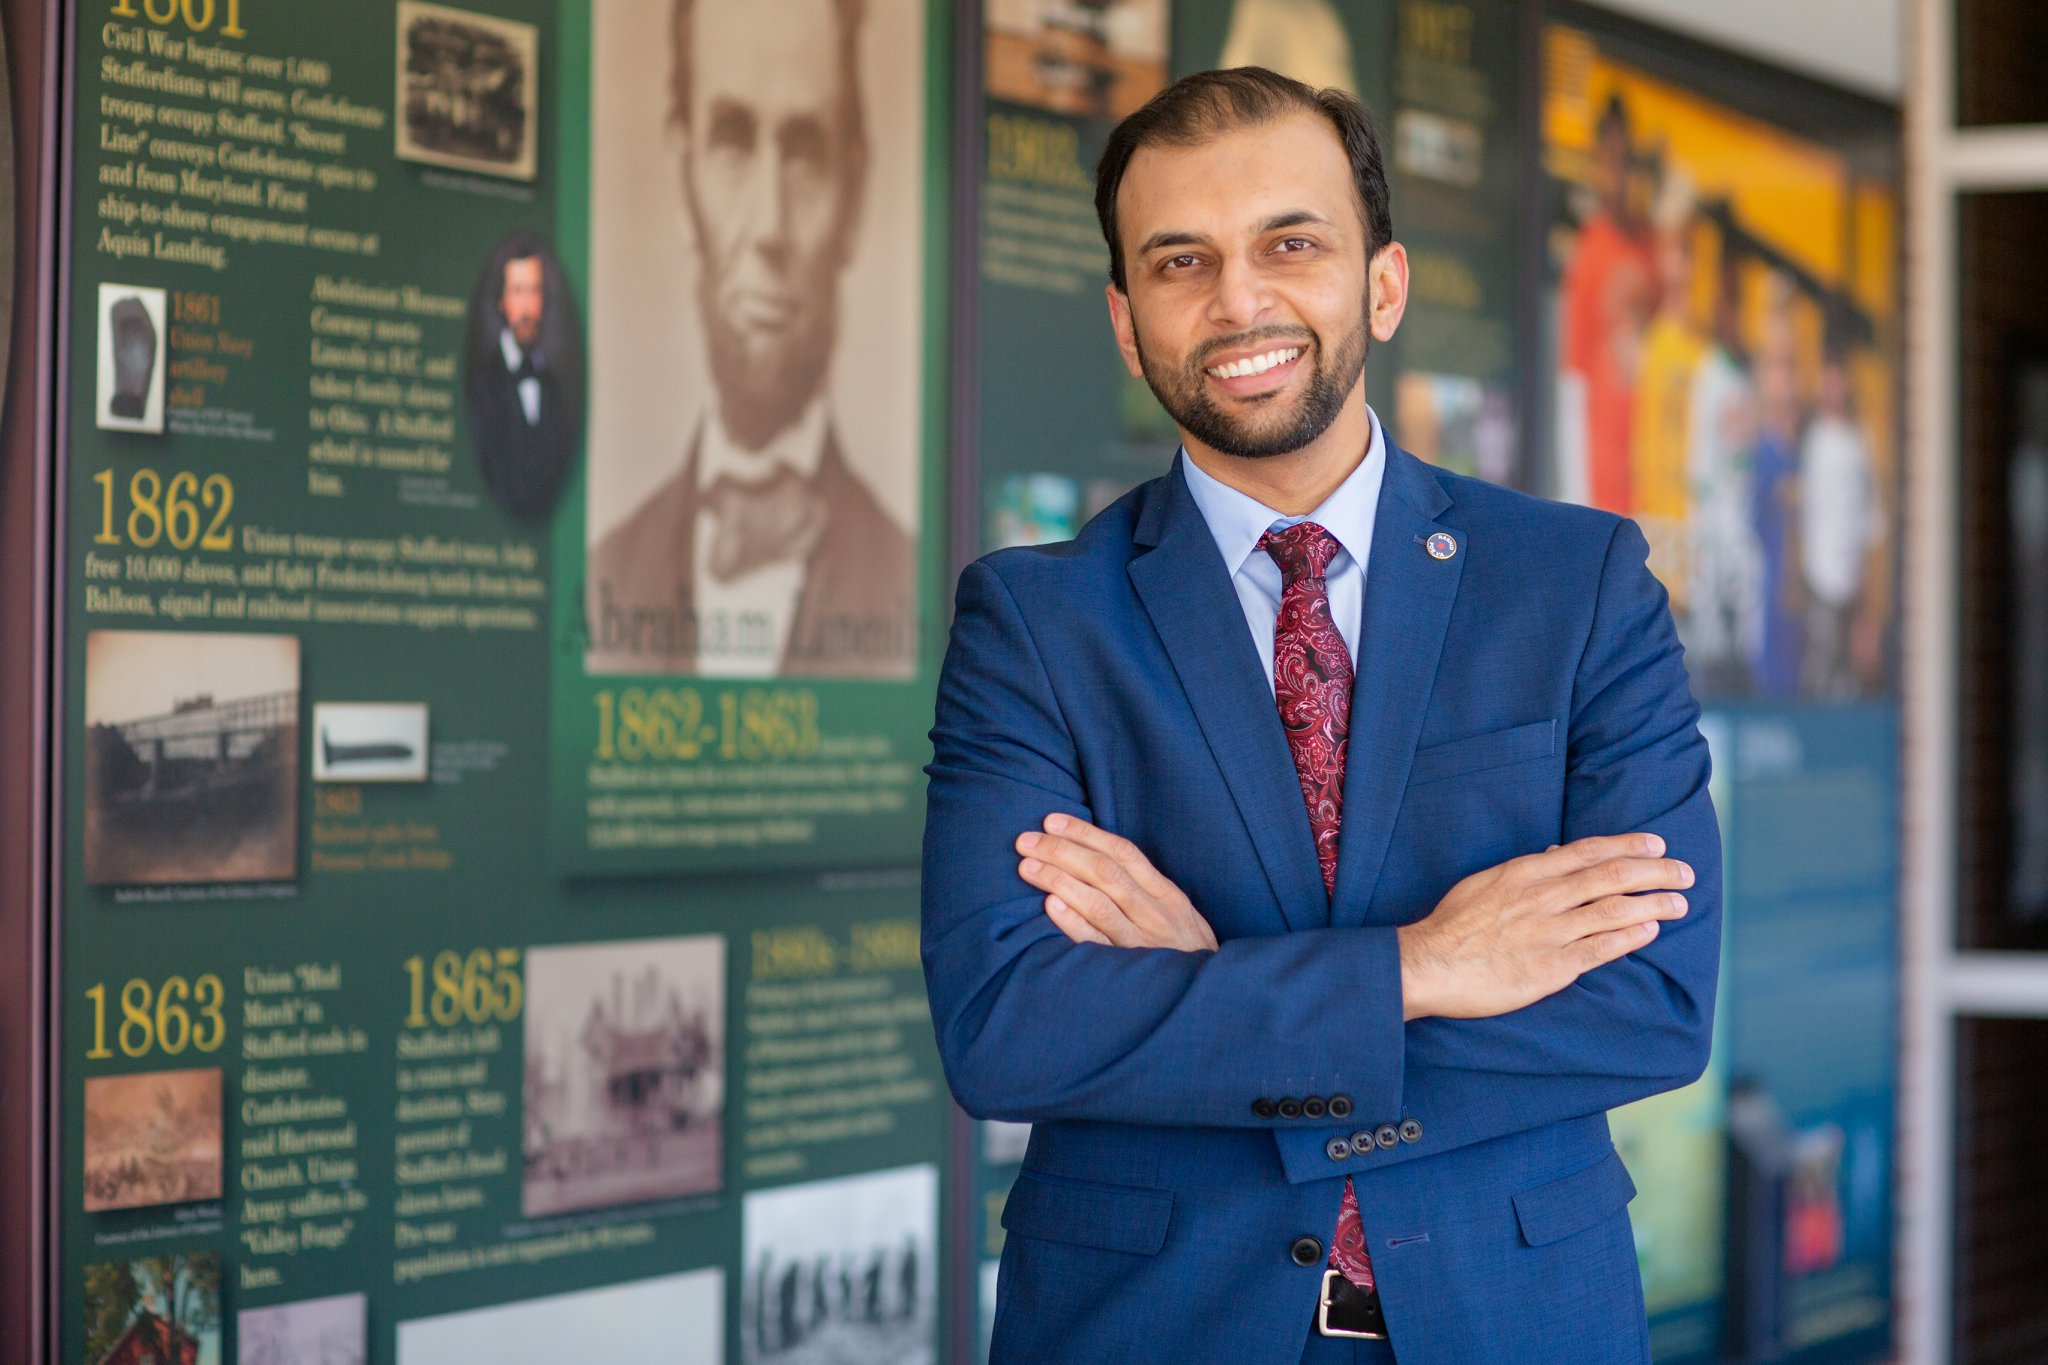 Qasim Rashid is an author, activist, and attorney running for State Senate in Virginia's 28th District.